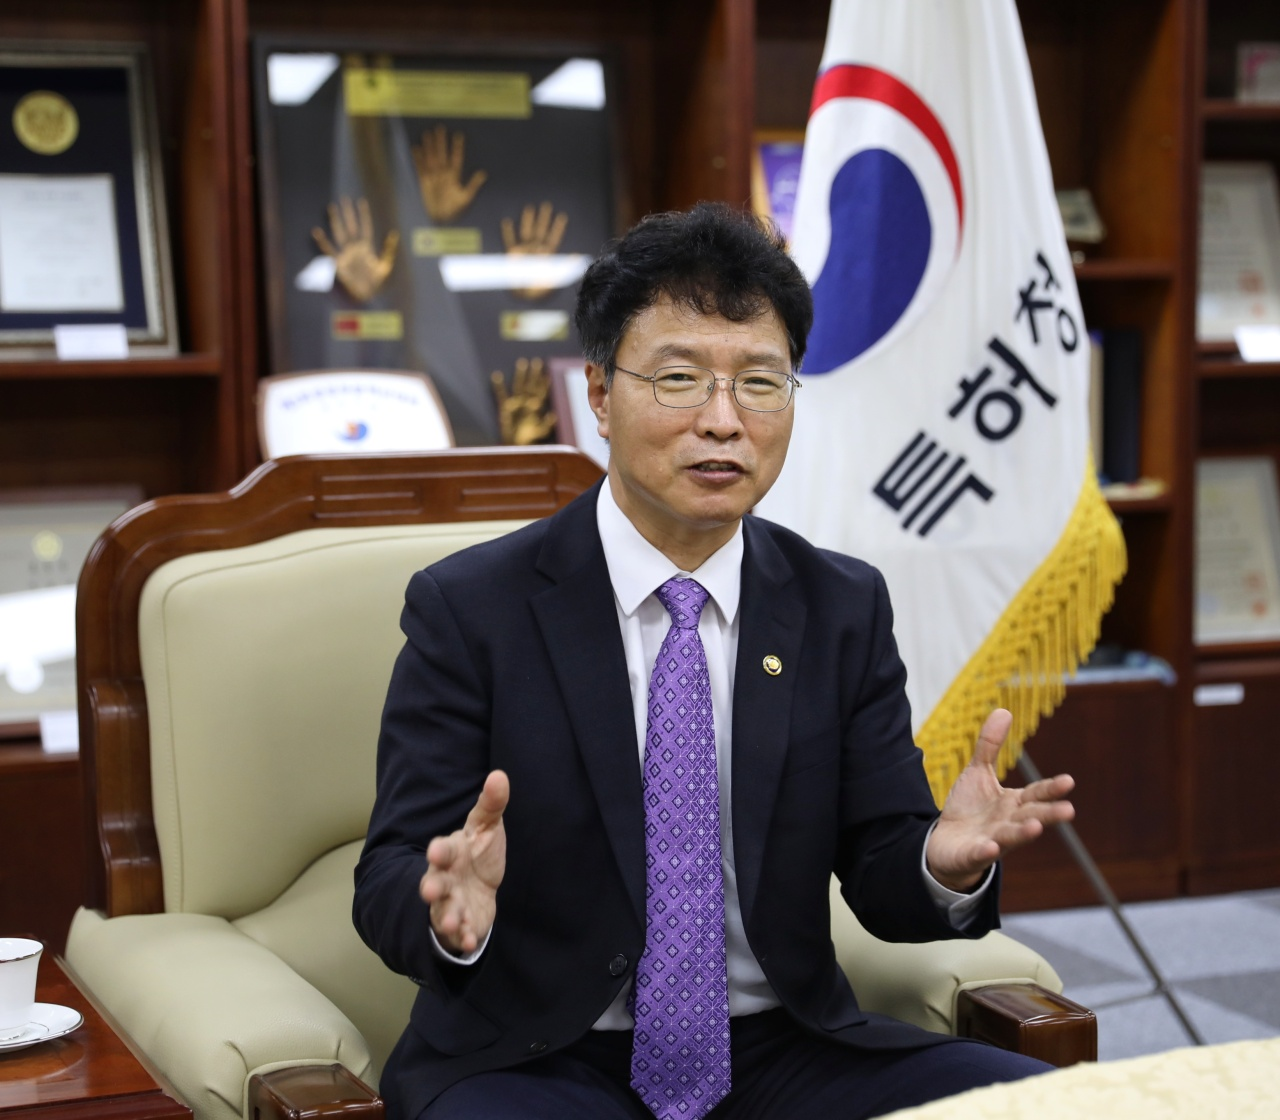 Kim Yong-rae, commissioner of the Korean Intellectual Property Office